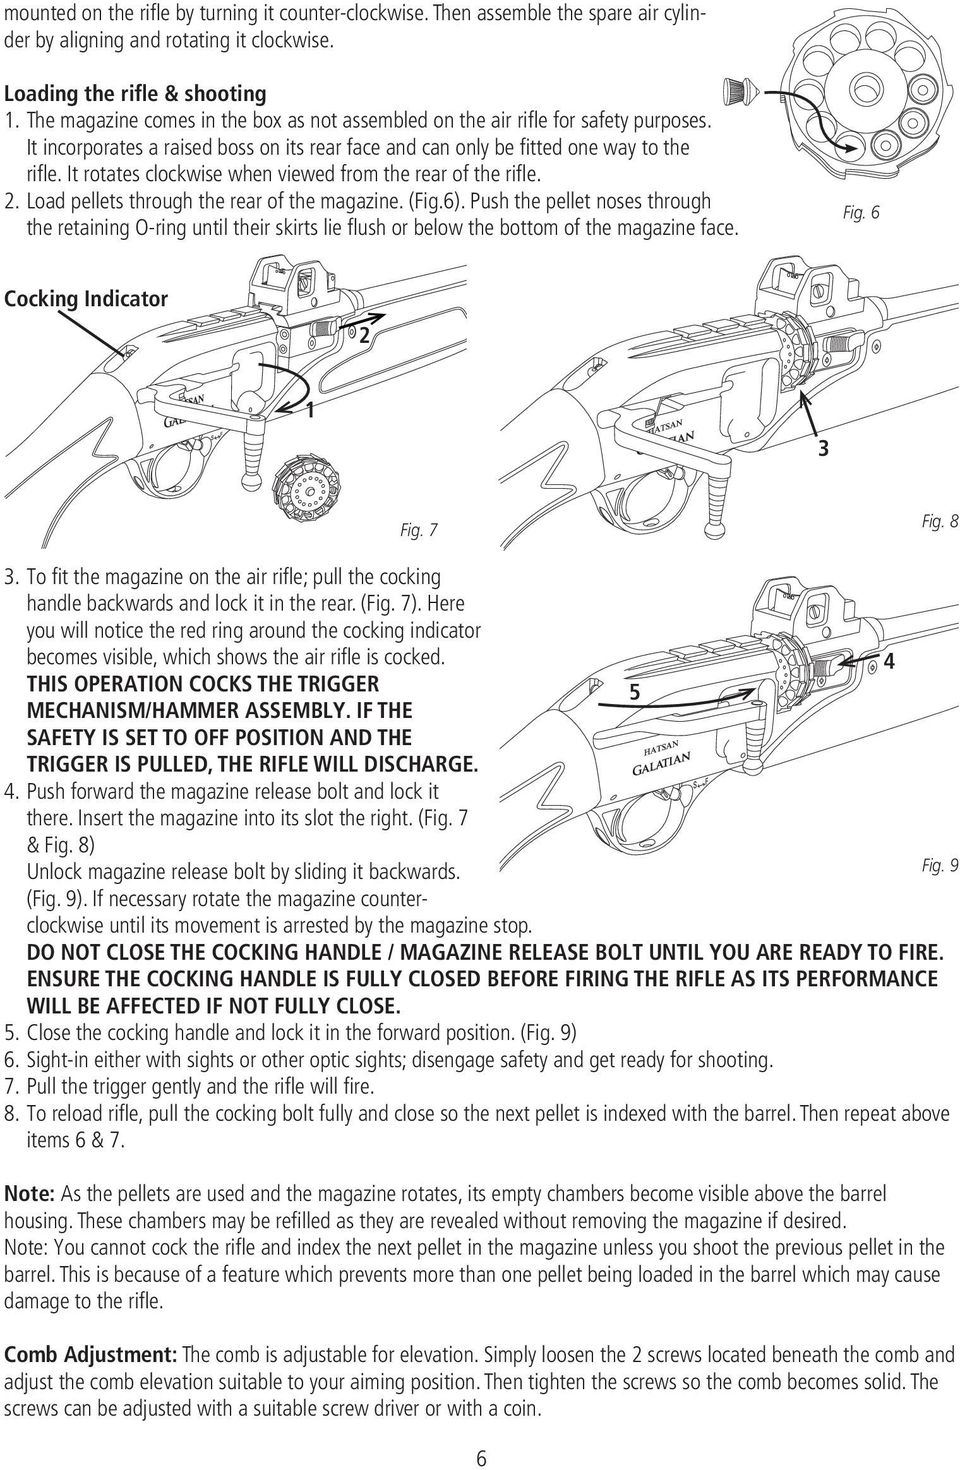 GALATIAN SERIES PCP AIR RIFLE - PDF